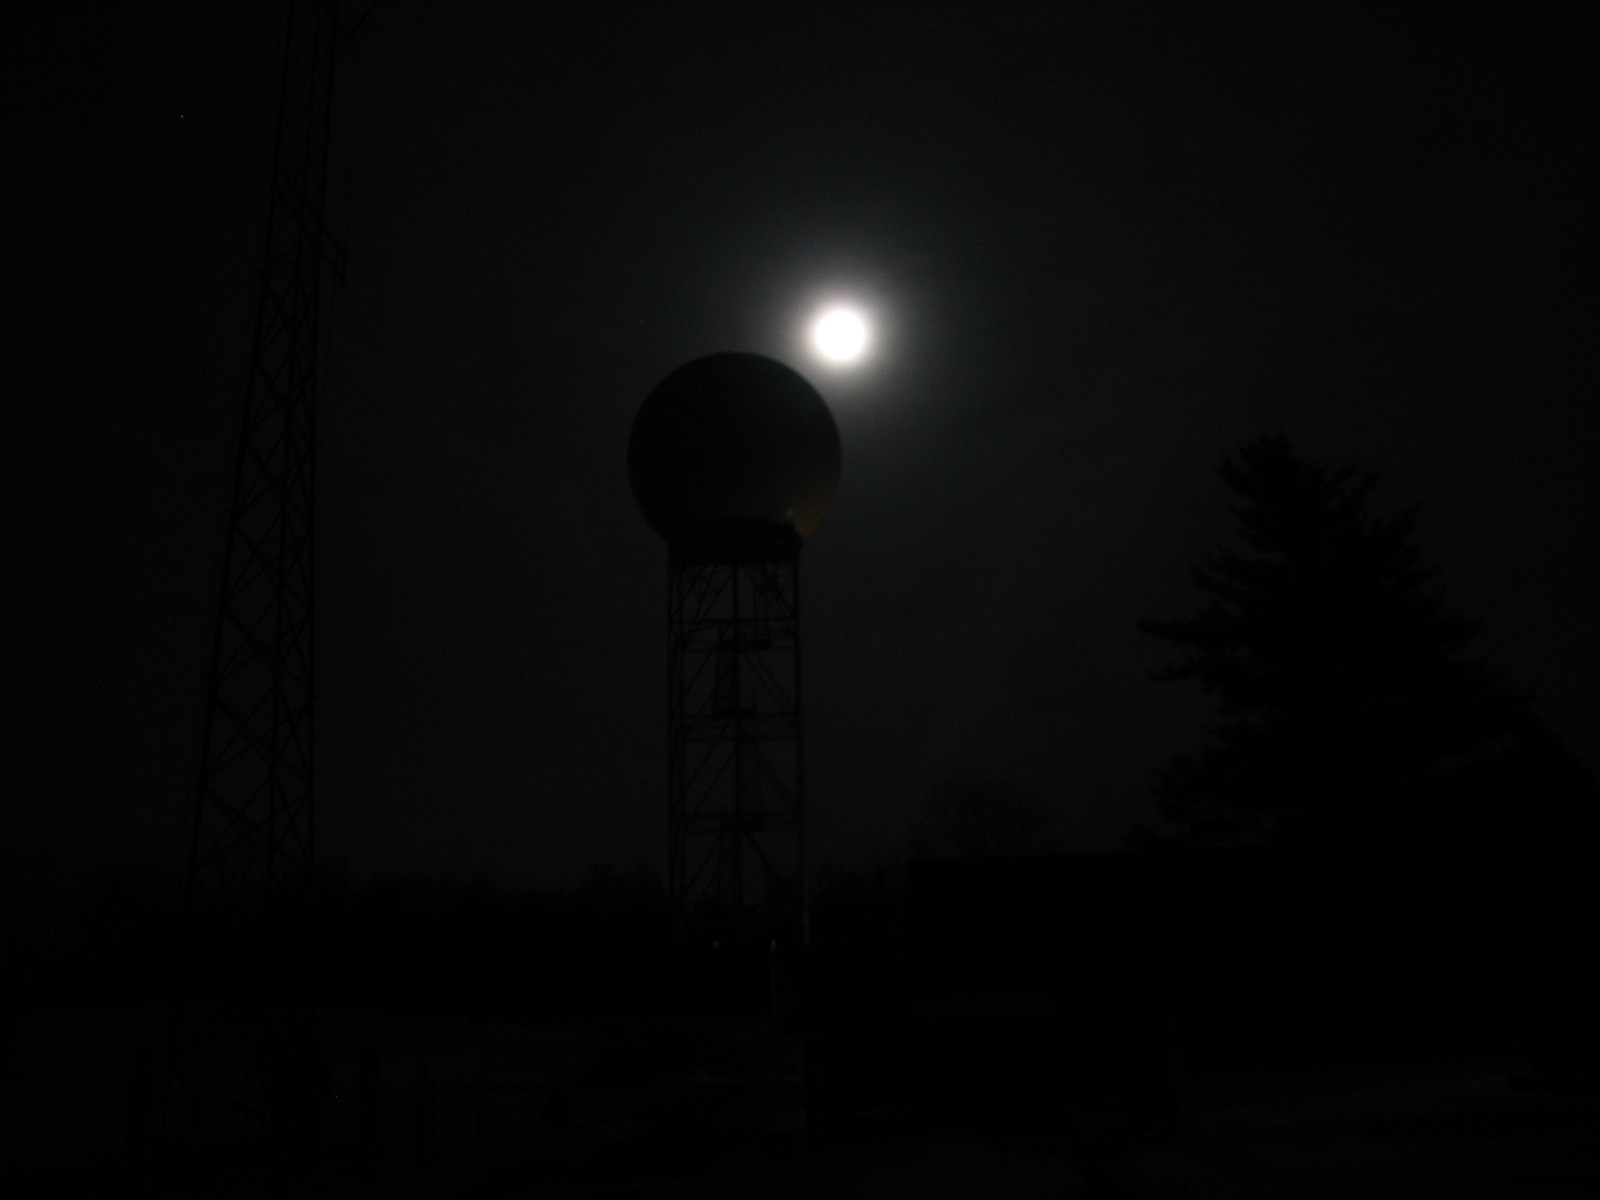 Silhouette of KIWX WSR-88D radar with Wolf Moon in background